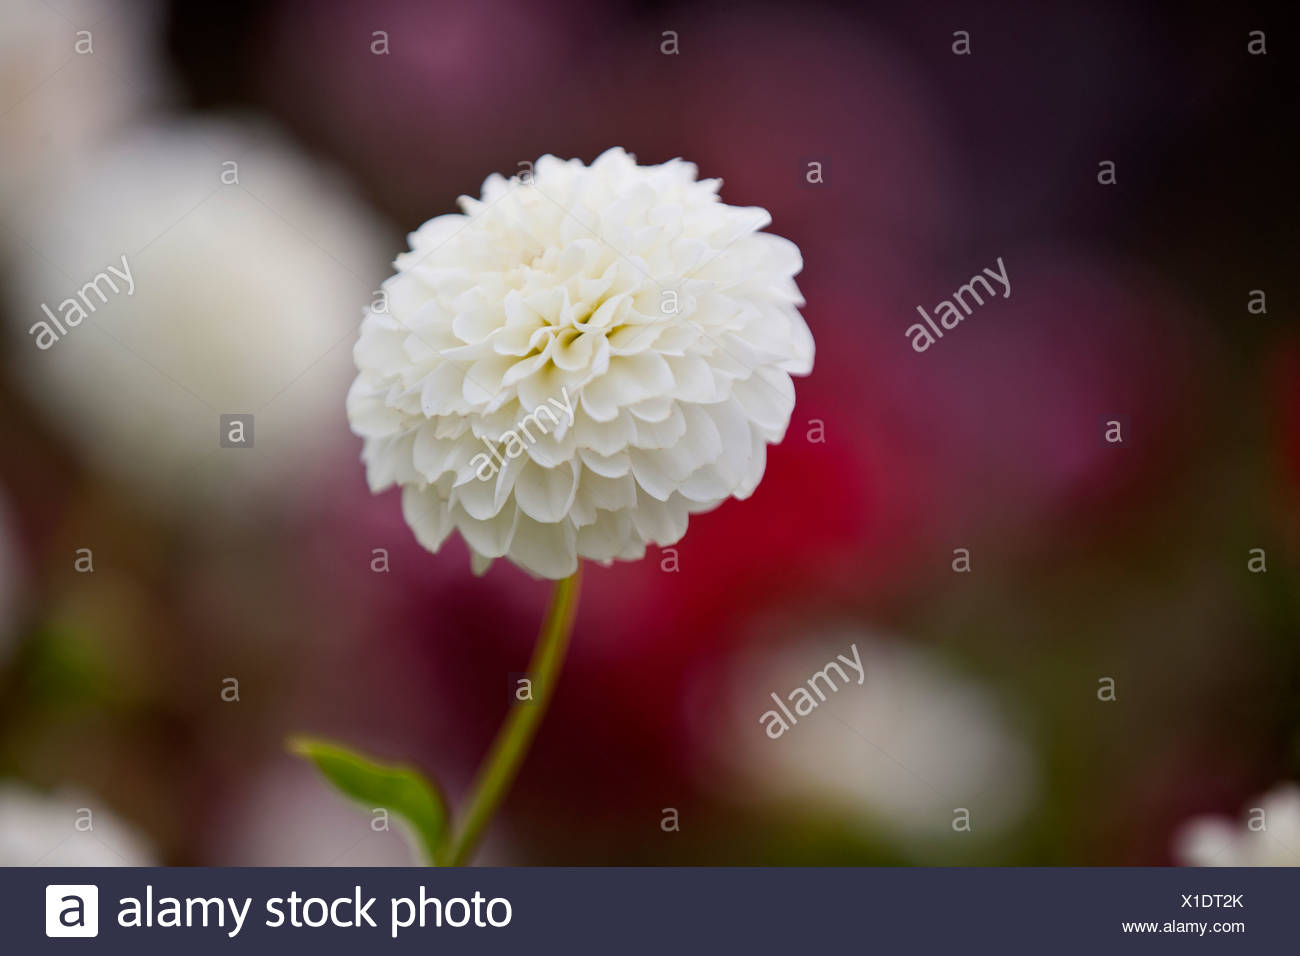 A white dahlia flower in bloom stock photo 276284811 alamy a white dahlia flower in bloom izmirmasajfo